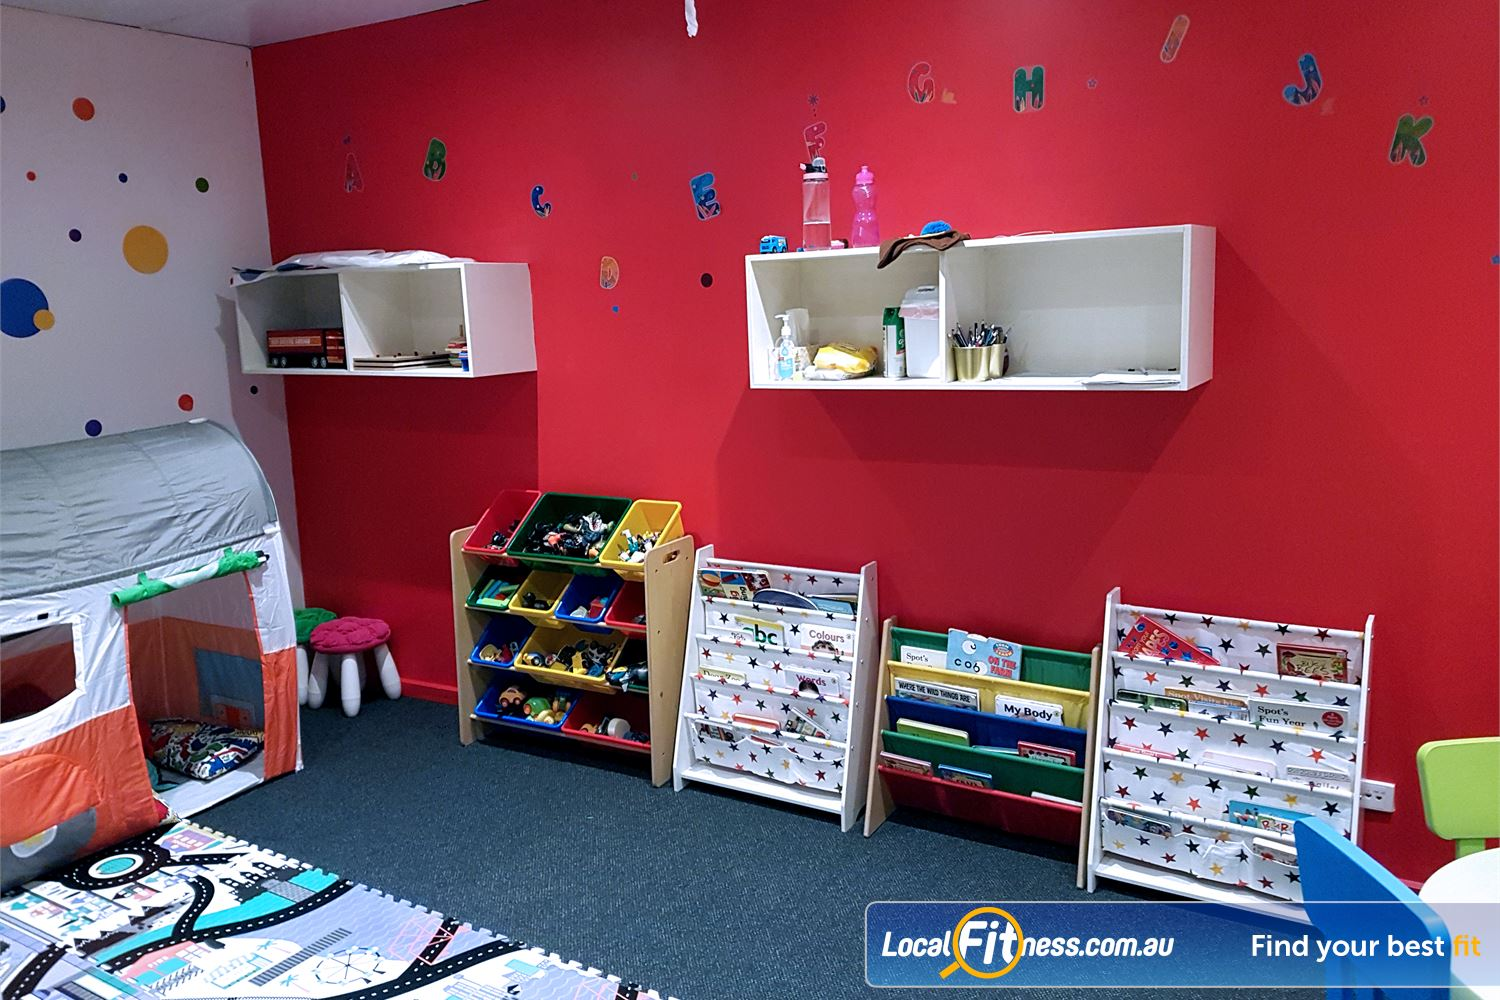 Fernwood Fitness Near Wynn Vale Plenty of activities for your kids to enjoy.